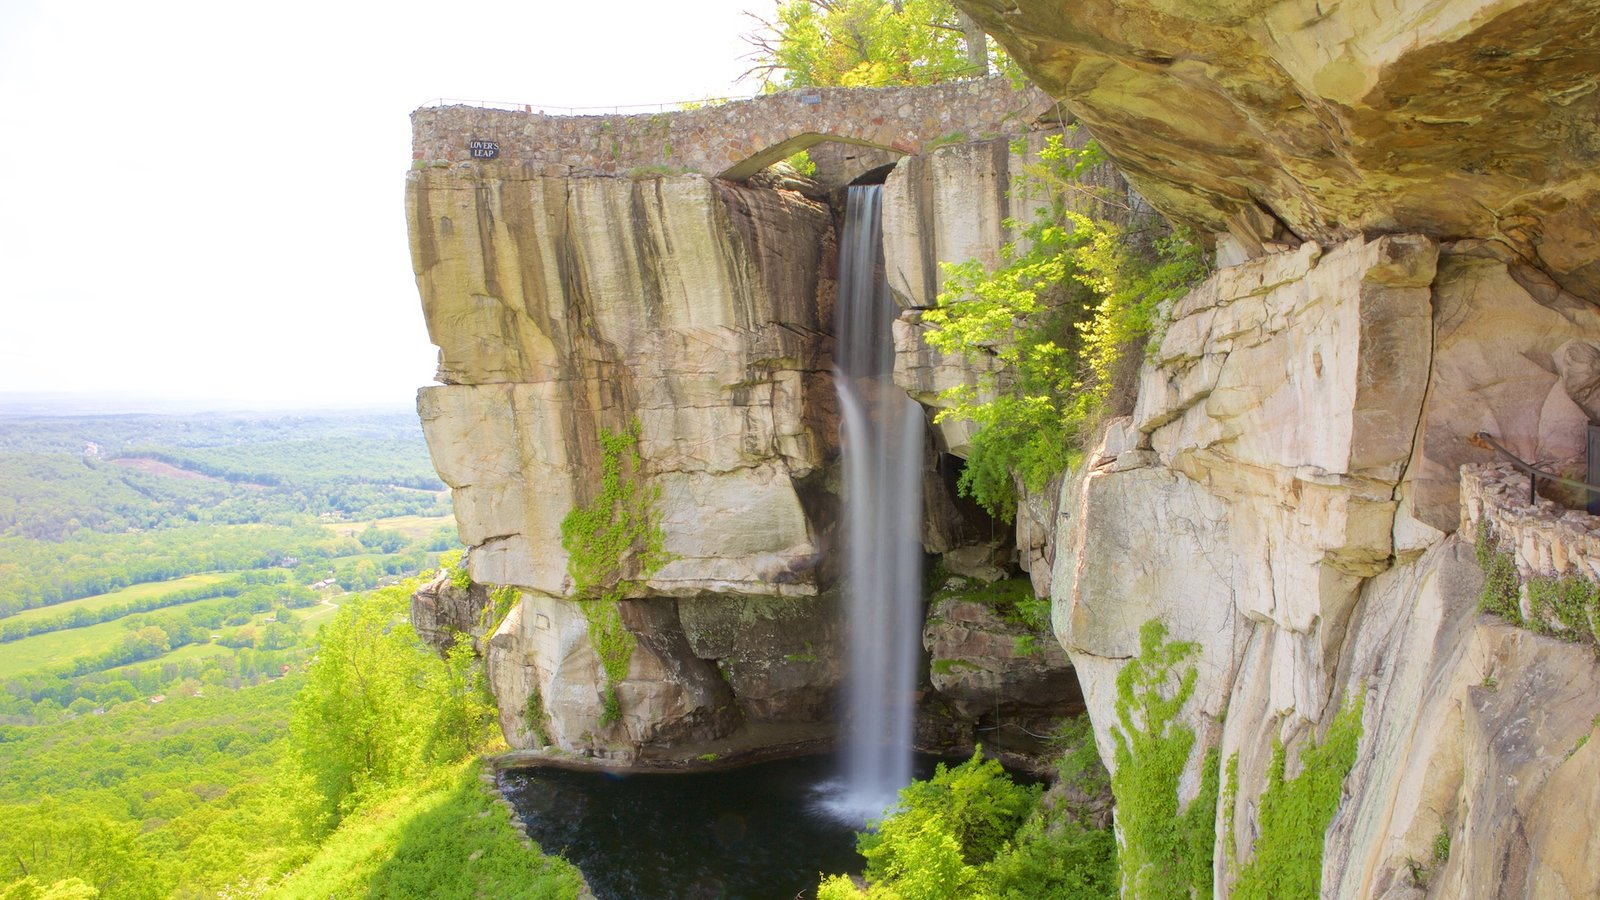 Lookout Mountain featuring a cascade and tranquil scenes